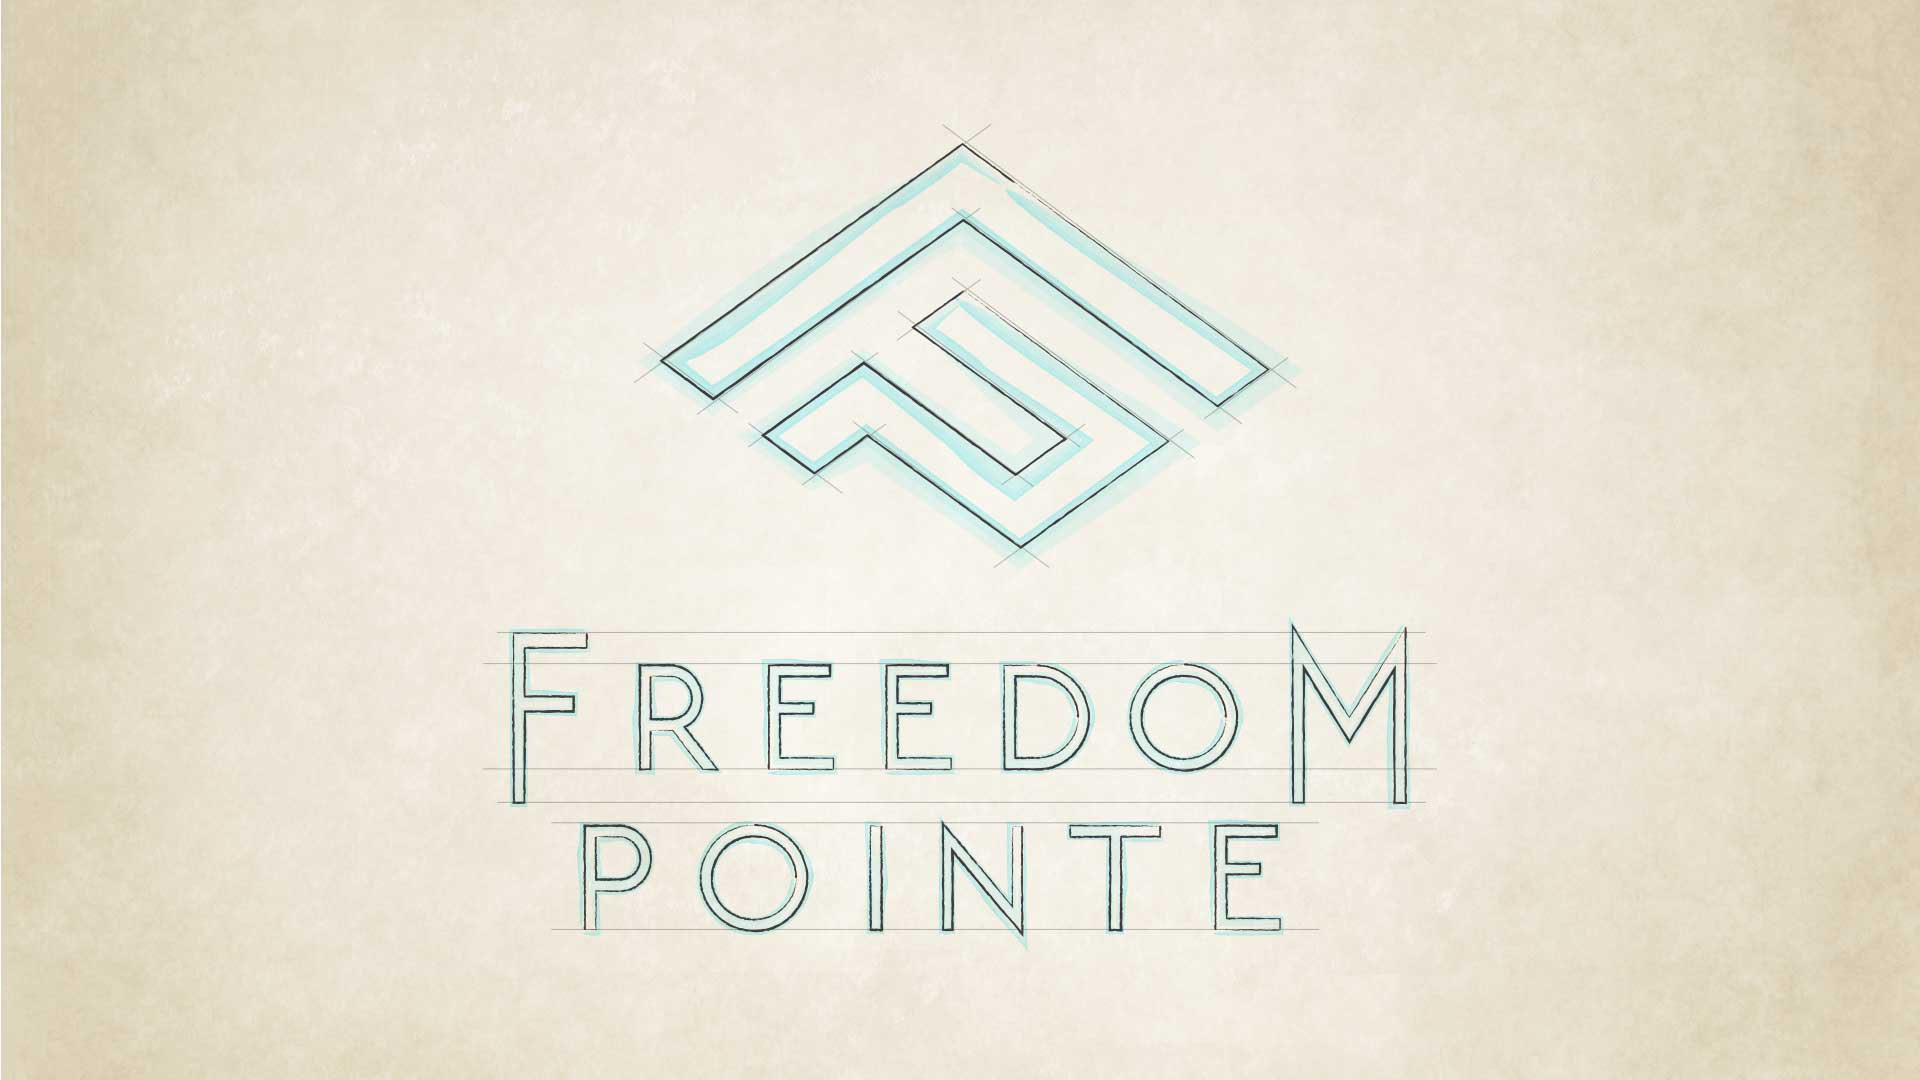 Freedom Pointe Sketch